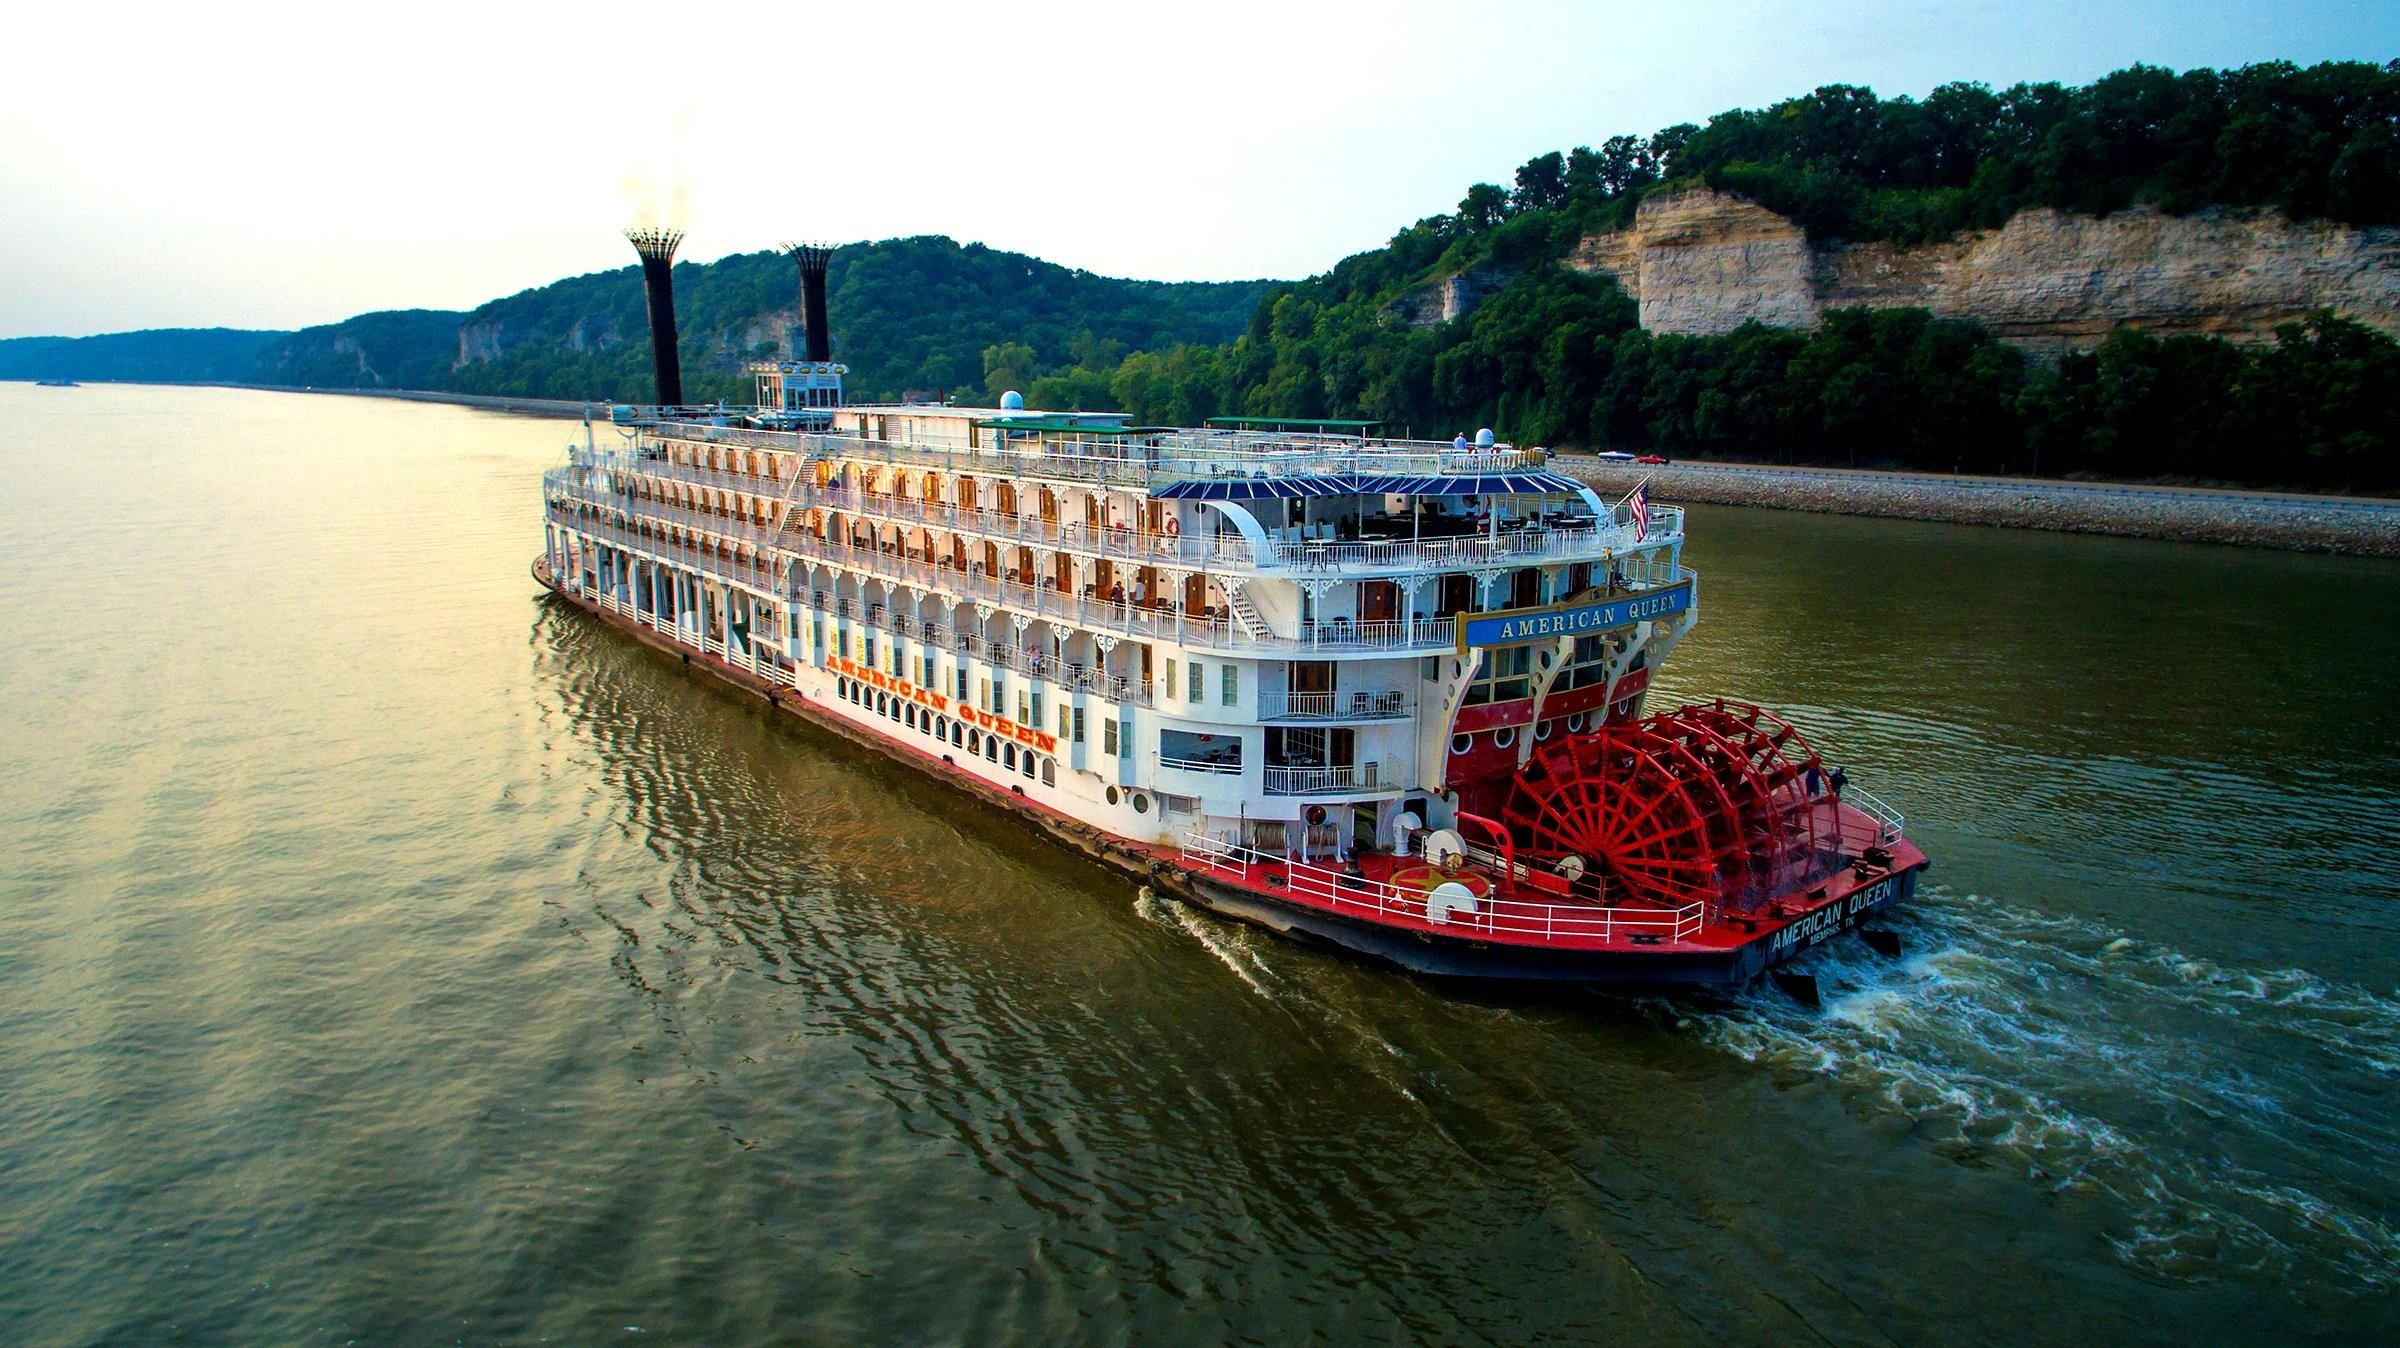 Cruising the Mighty Mississippi